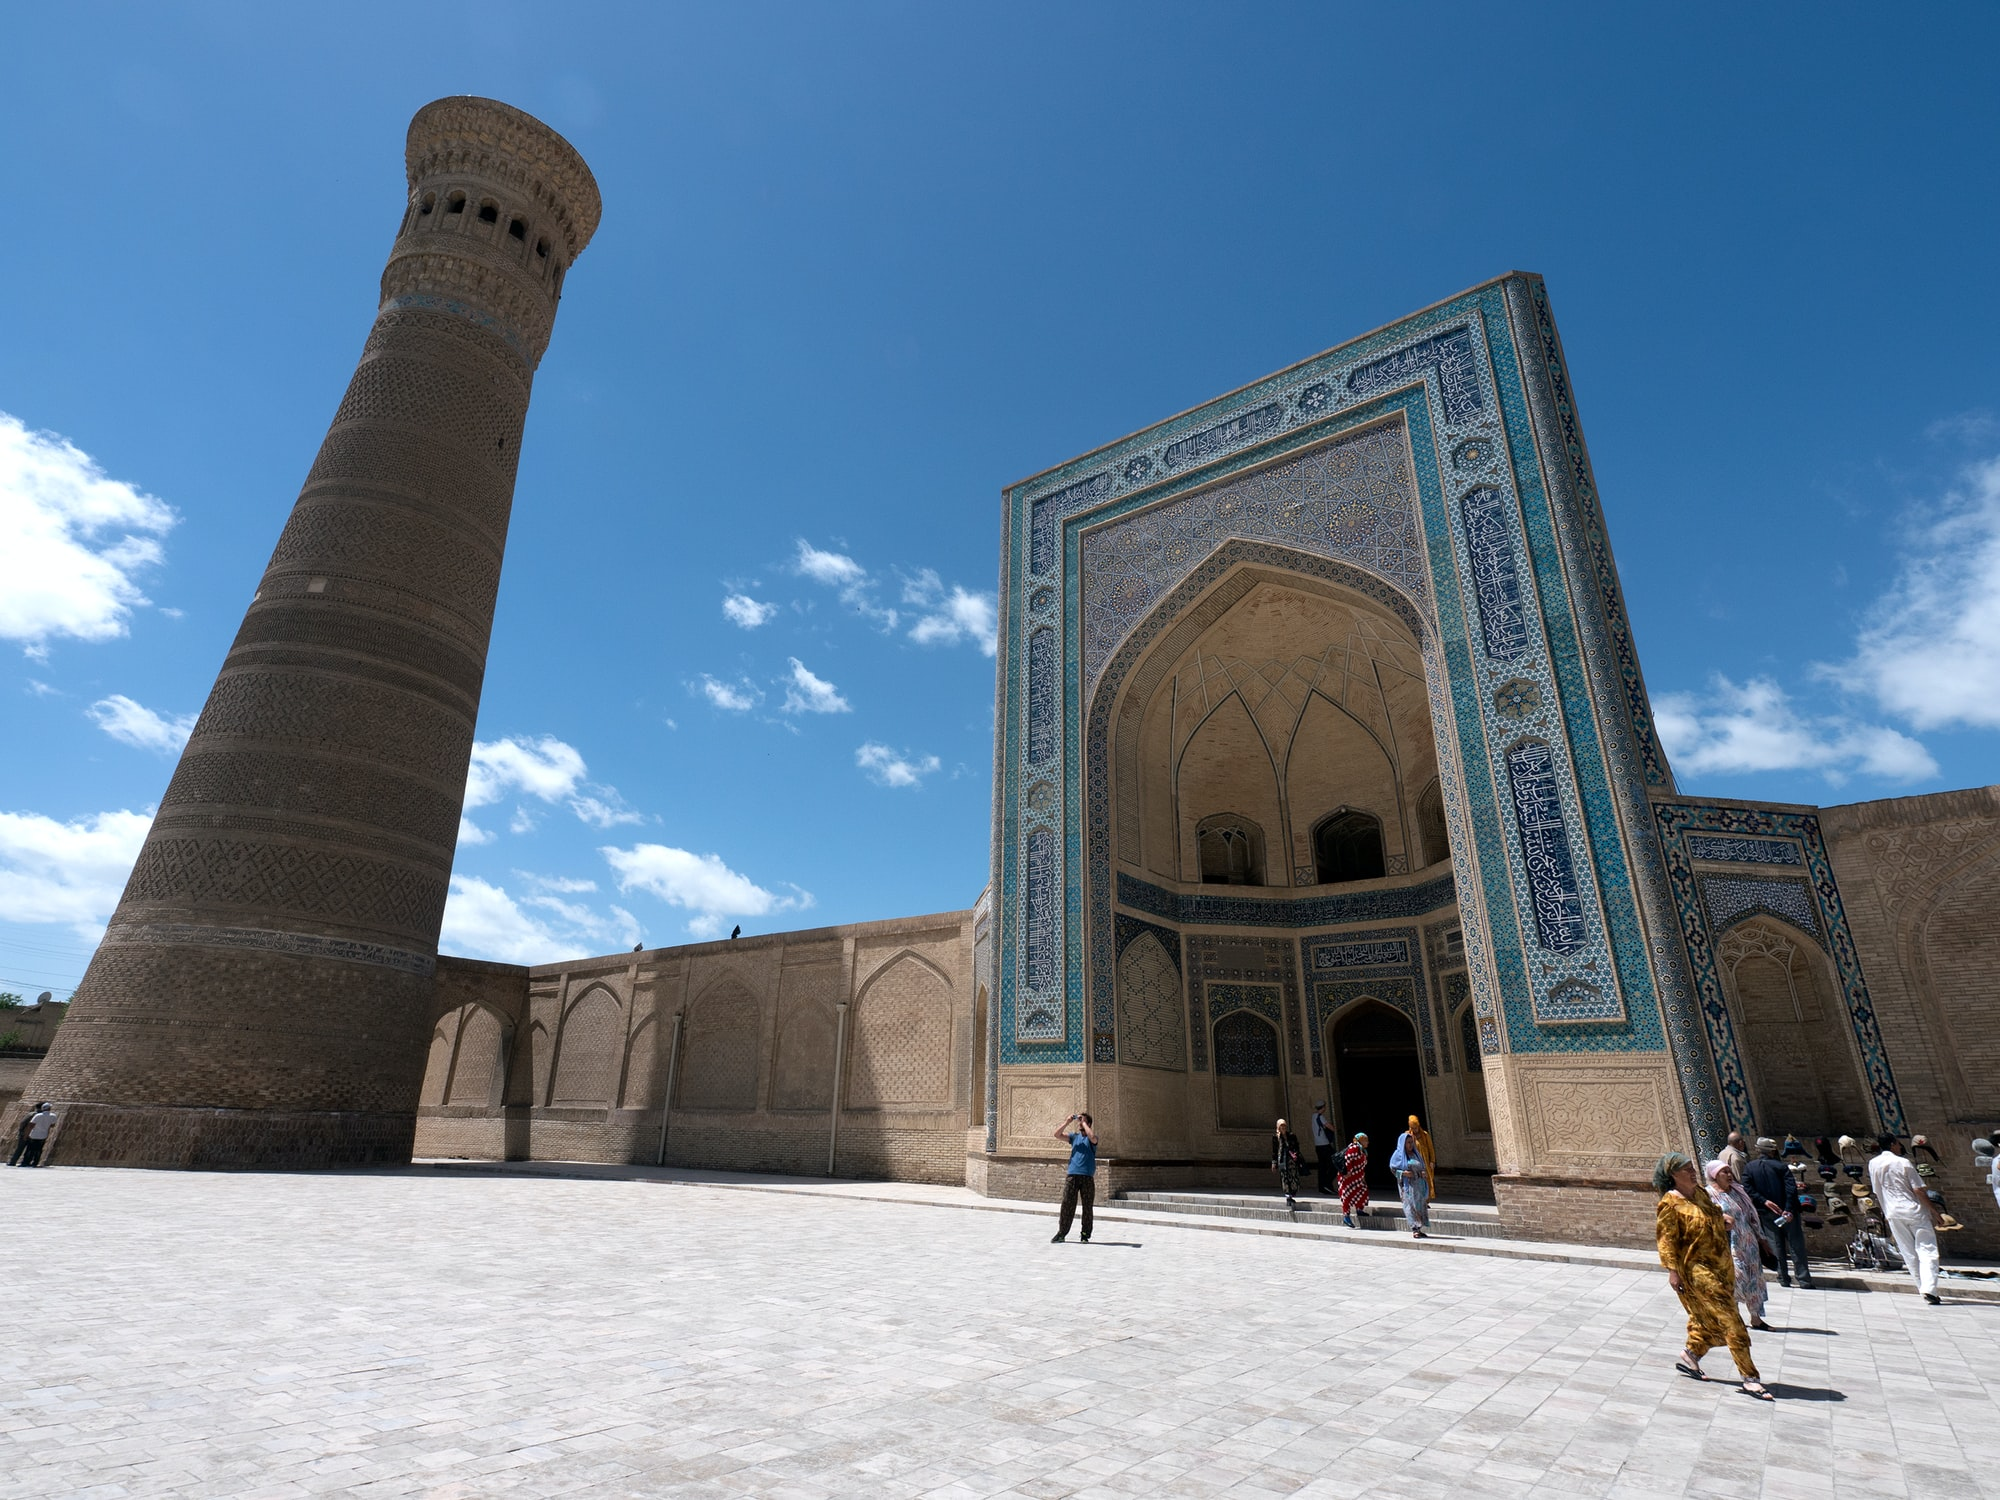 Uzbekistan contains some of the best preserved former Silk Road cities in Asia. 